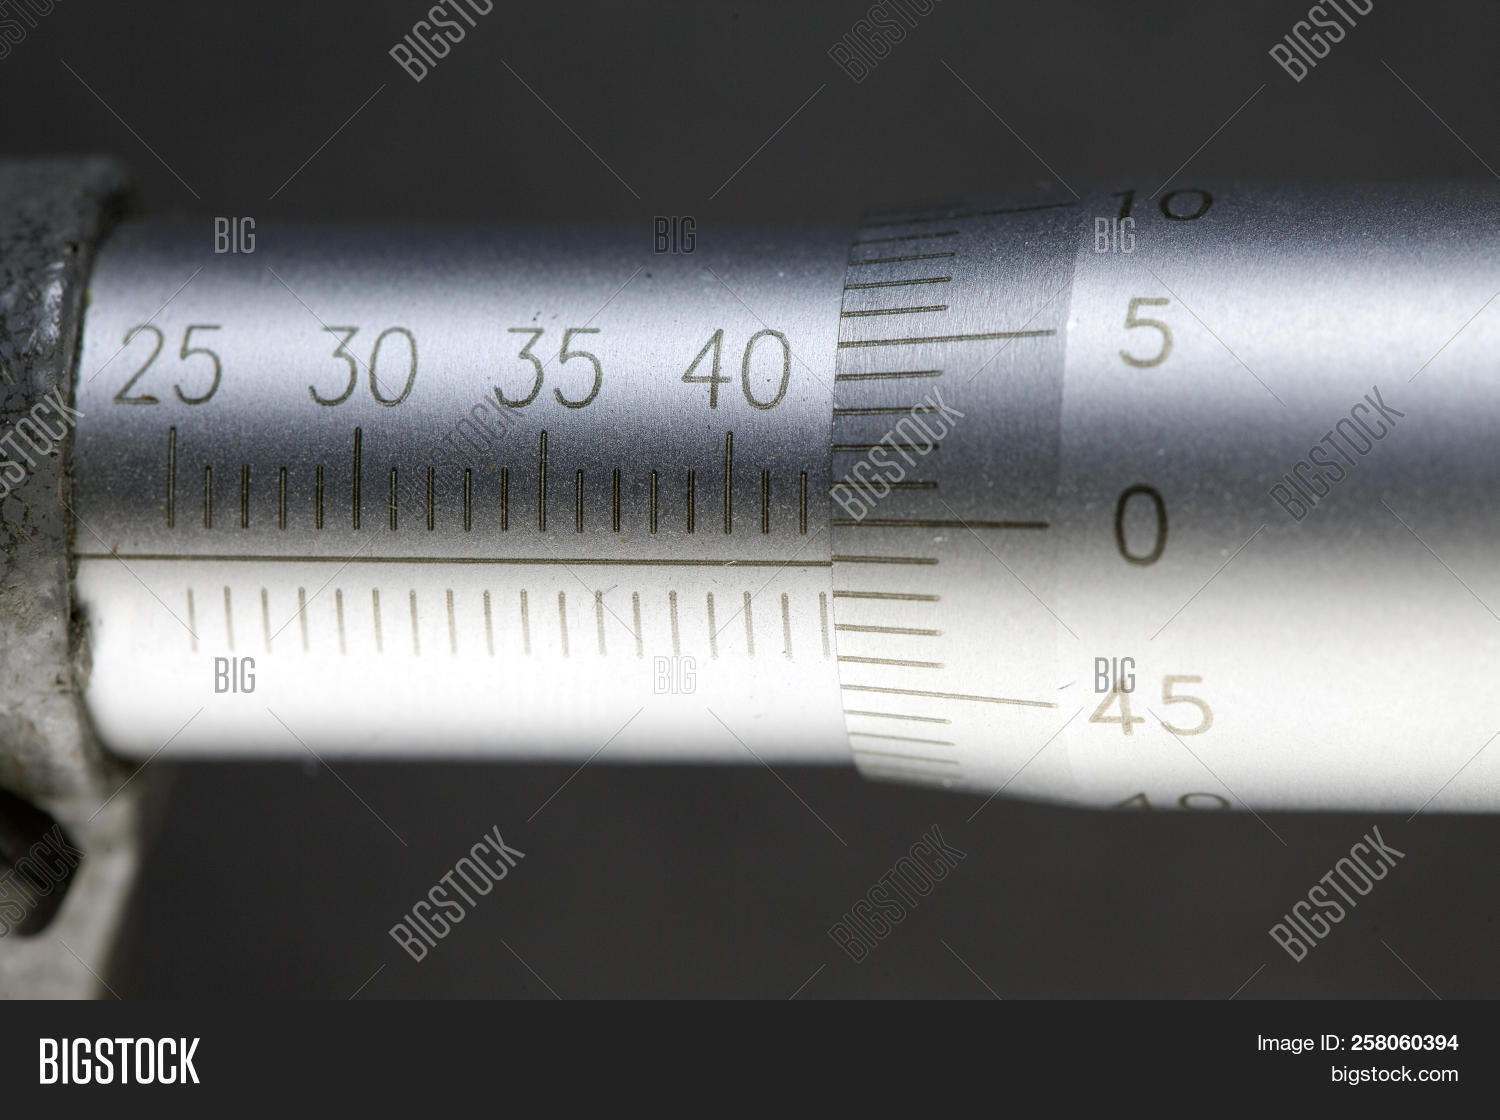 accuracy,background,caliper,closeup,construction,detail,digital,display,electrical,engineering,equipment,industrial,industry,instrument,manufacturing,measure,measurement,mechanical,metal,metallic,meter,micrometer,number,object,precision,quality,stainless,steel,technology,tool,vernier,work